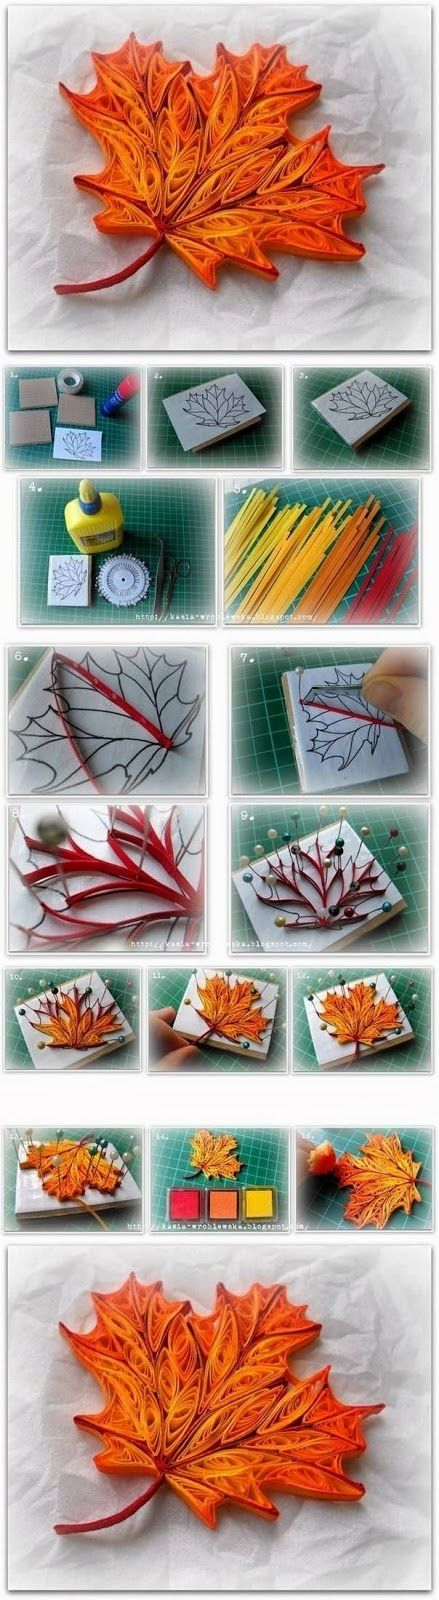 quilling a maple leaf. This makes me want to try quilling more than anything els